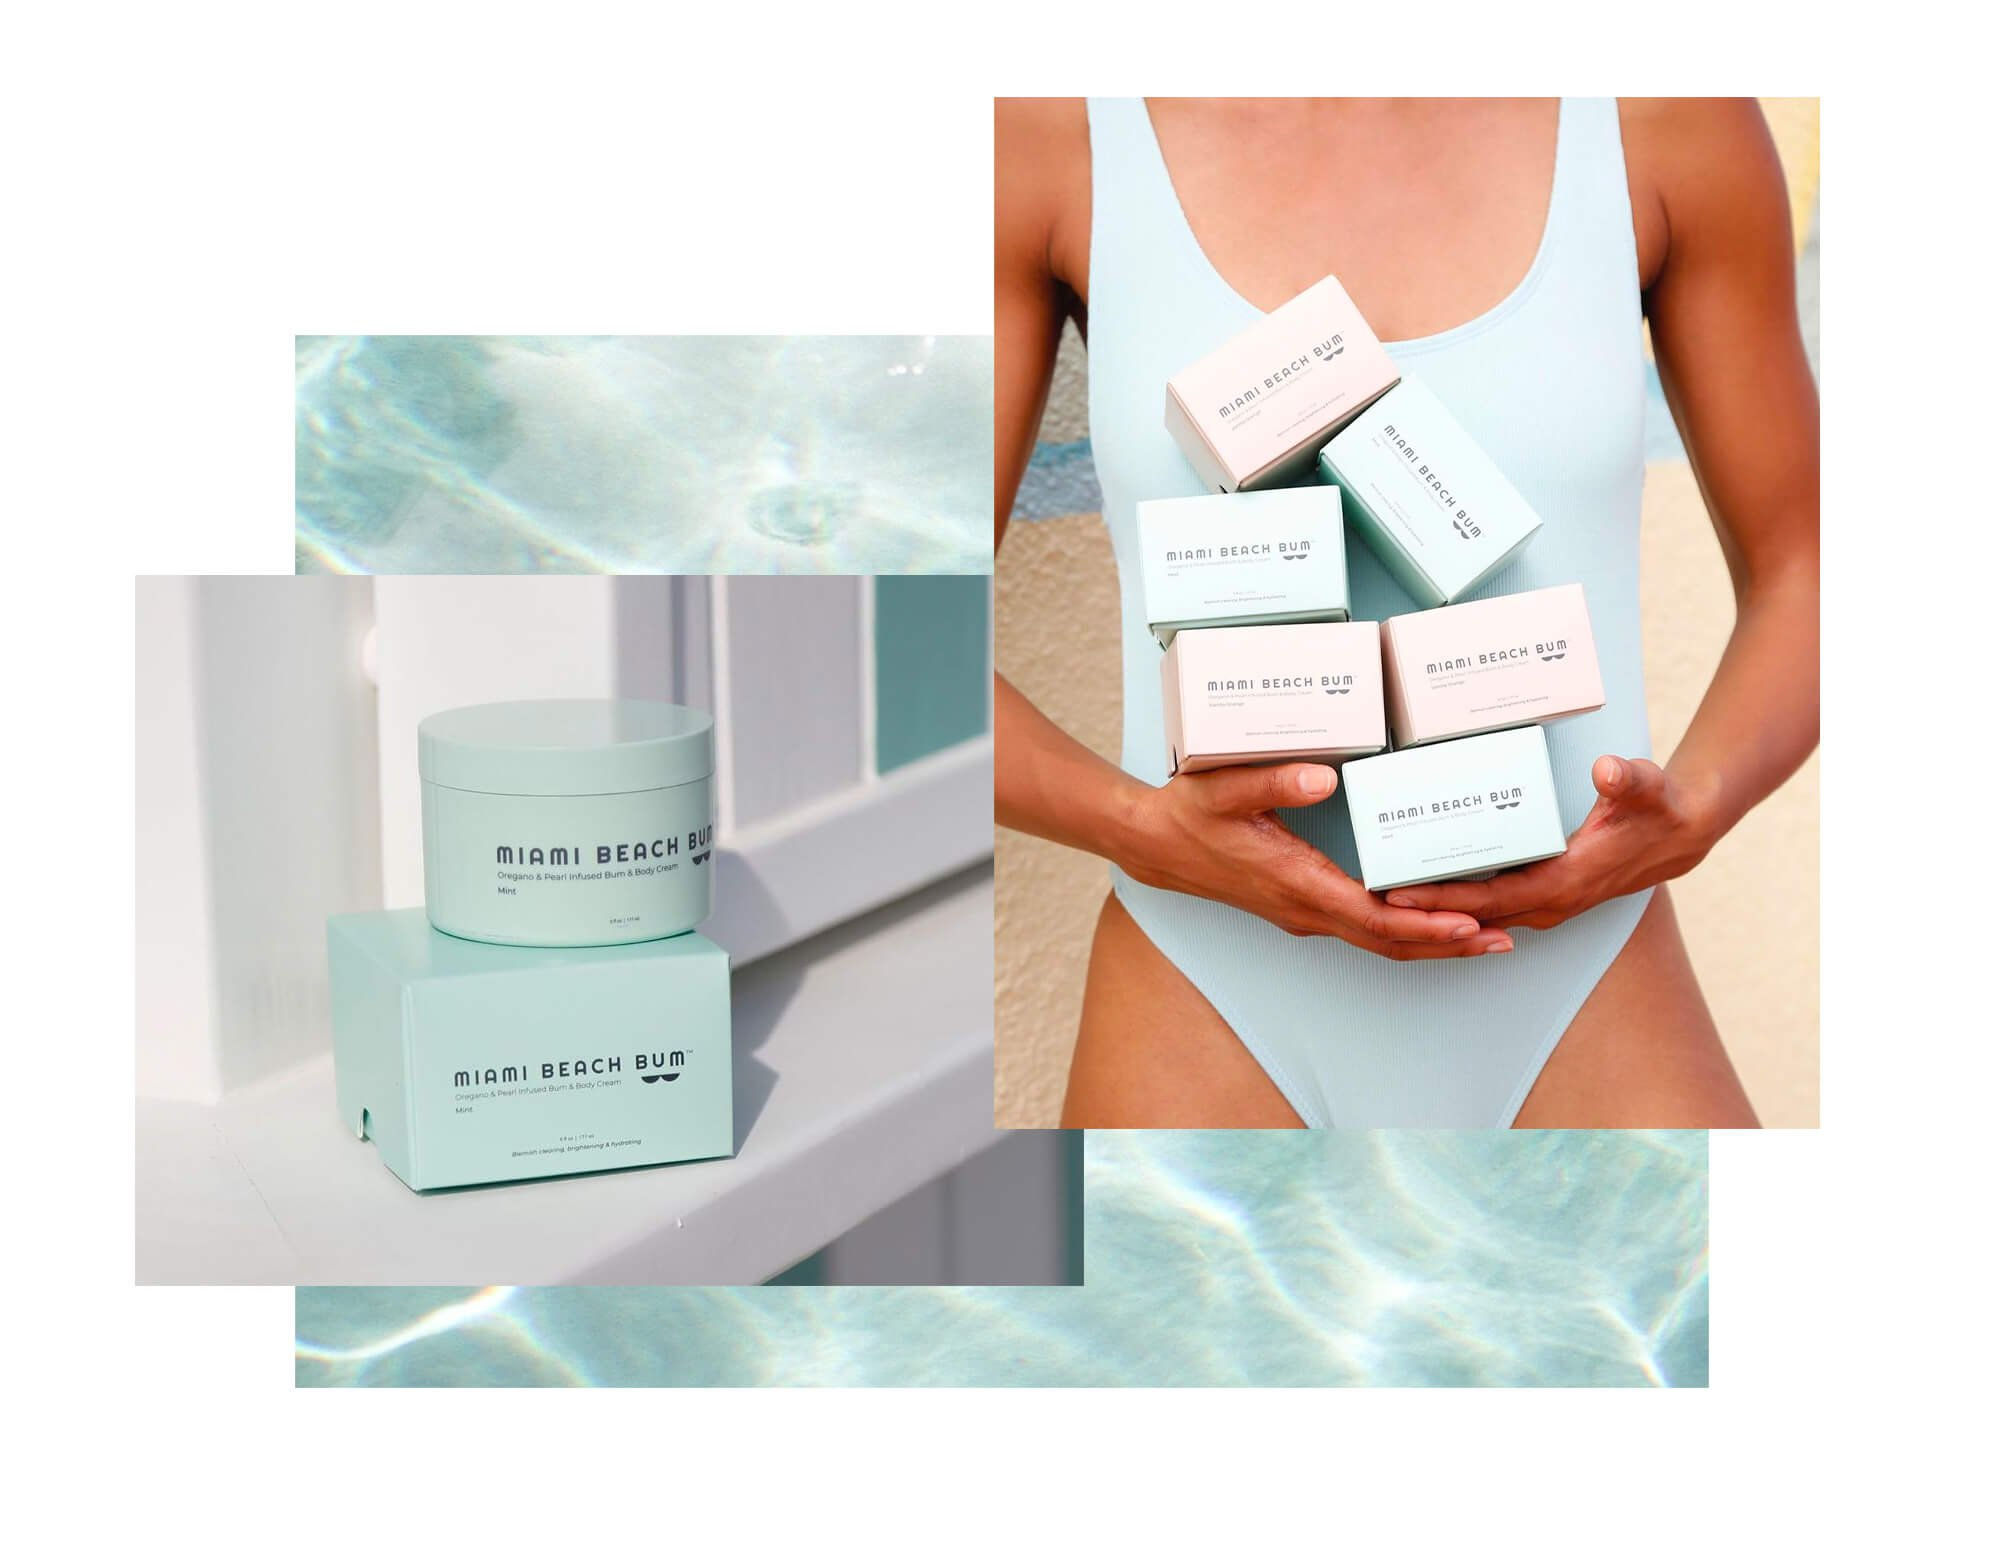 Jacober Creative Brand Identity for Miami beach Bum. Photo of lifestyle photography and packaging design